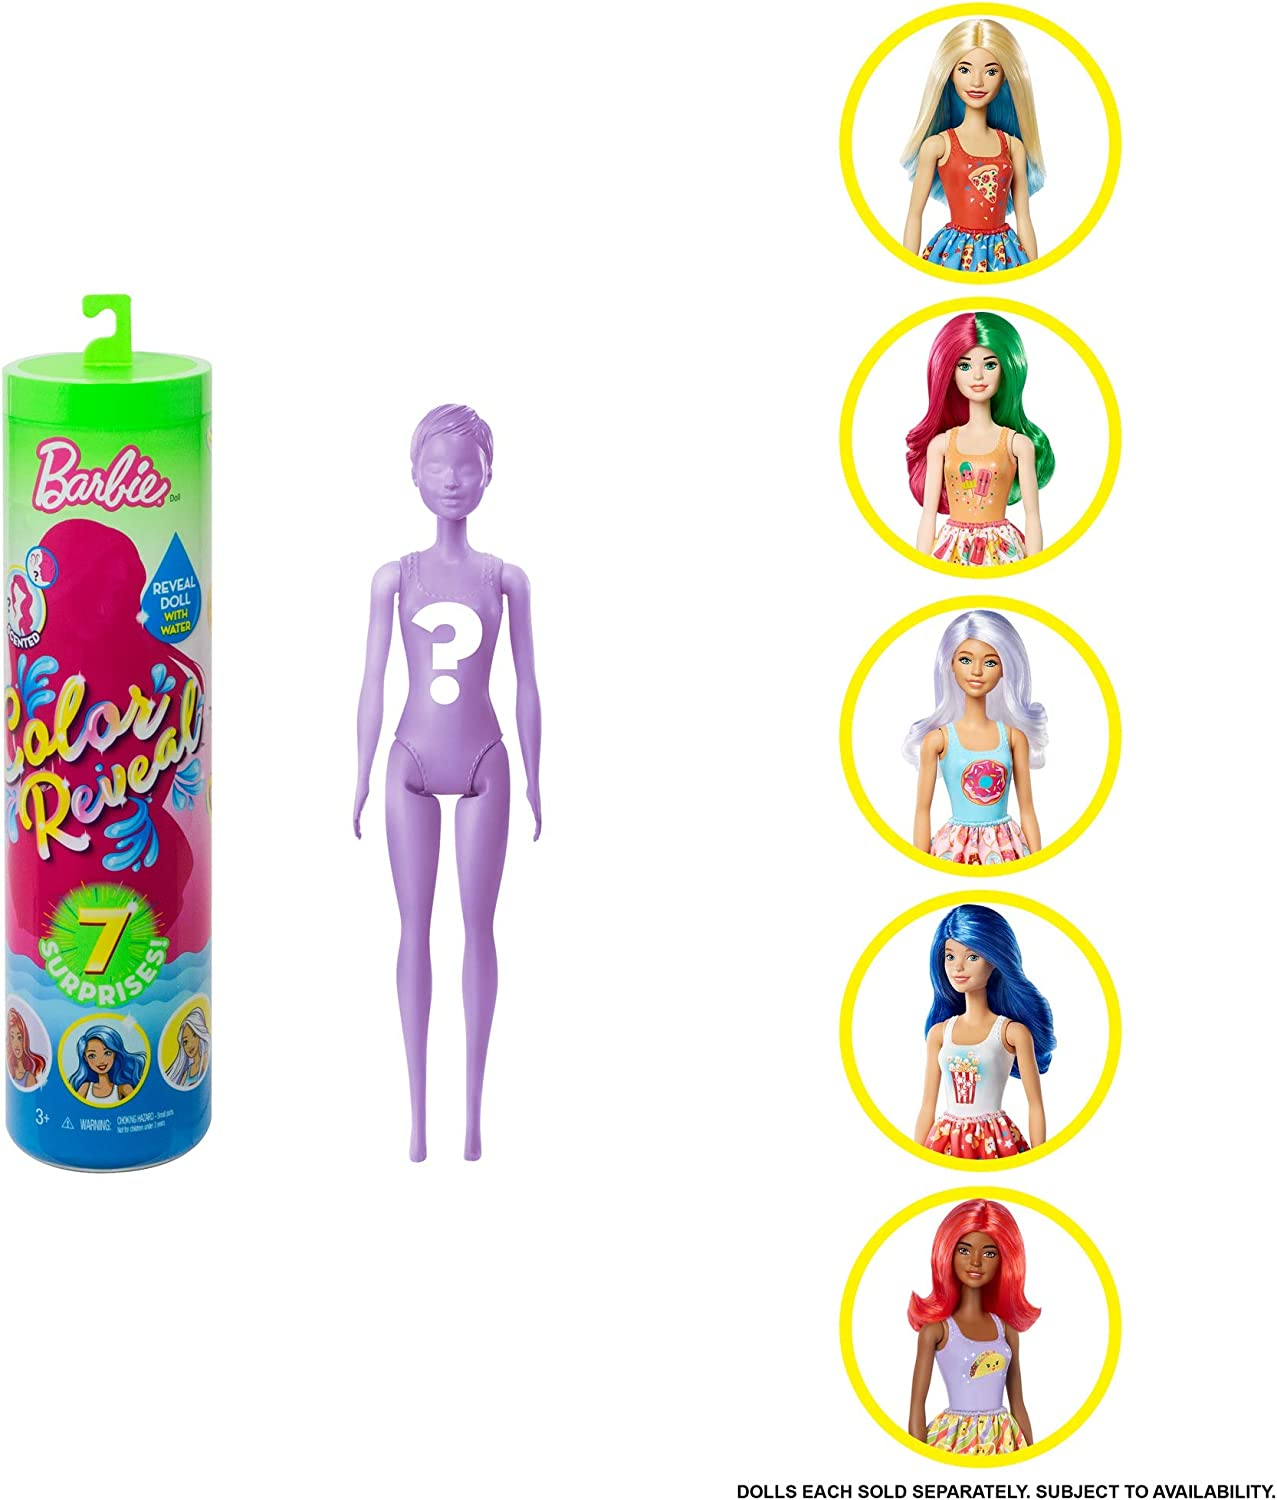 Barbie Color Reveal Doll with 7 Surprises: Water Reveals Doll's Look & Creates Color Change on Face & Sculpted Hair; 4 Mystery Bags Contain Surprise Scented Wig, Skirt, Shoes & Sponge; Food-Themed